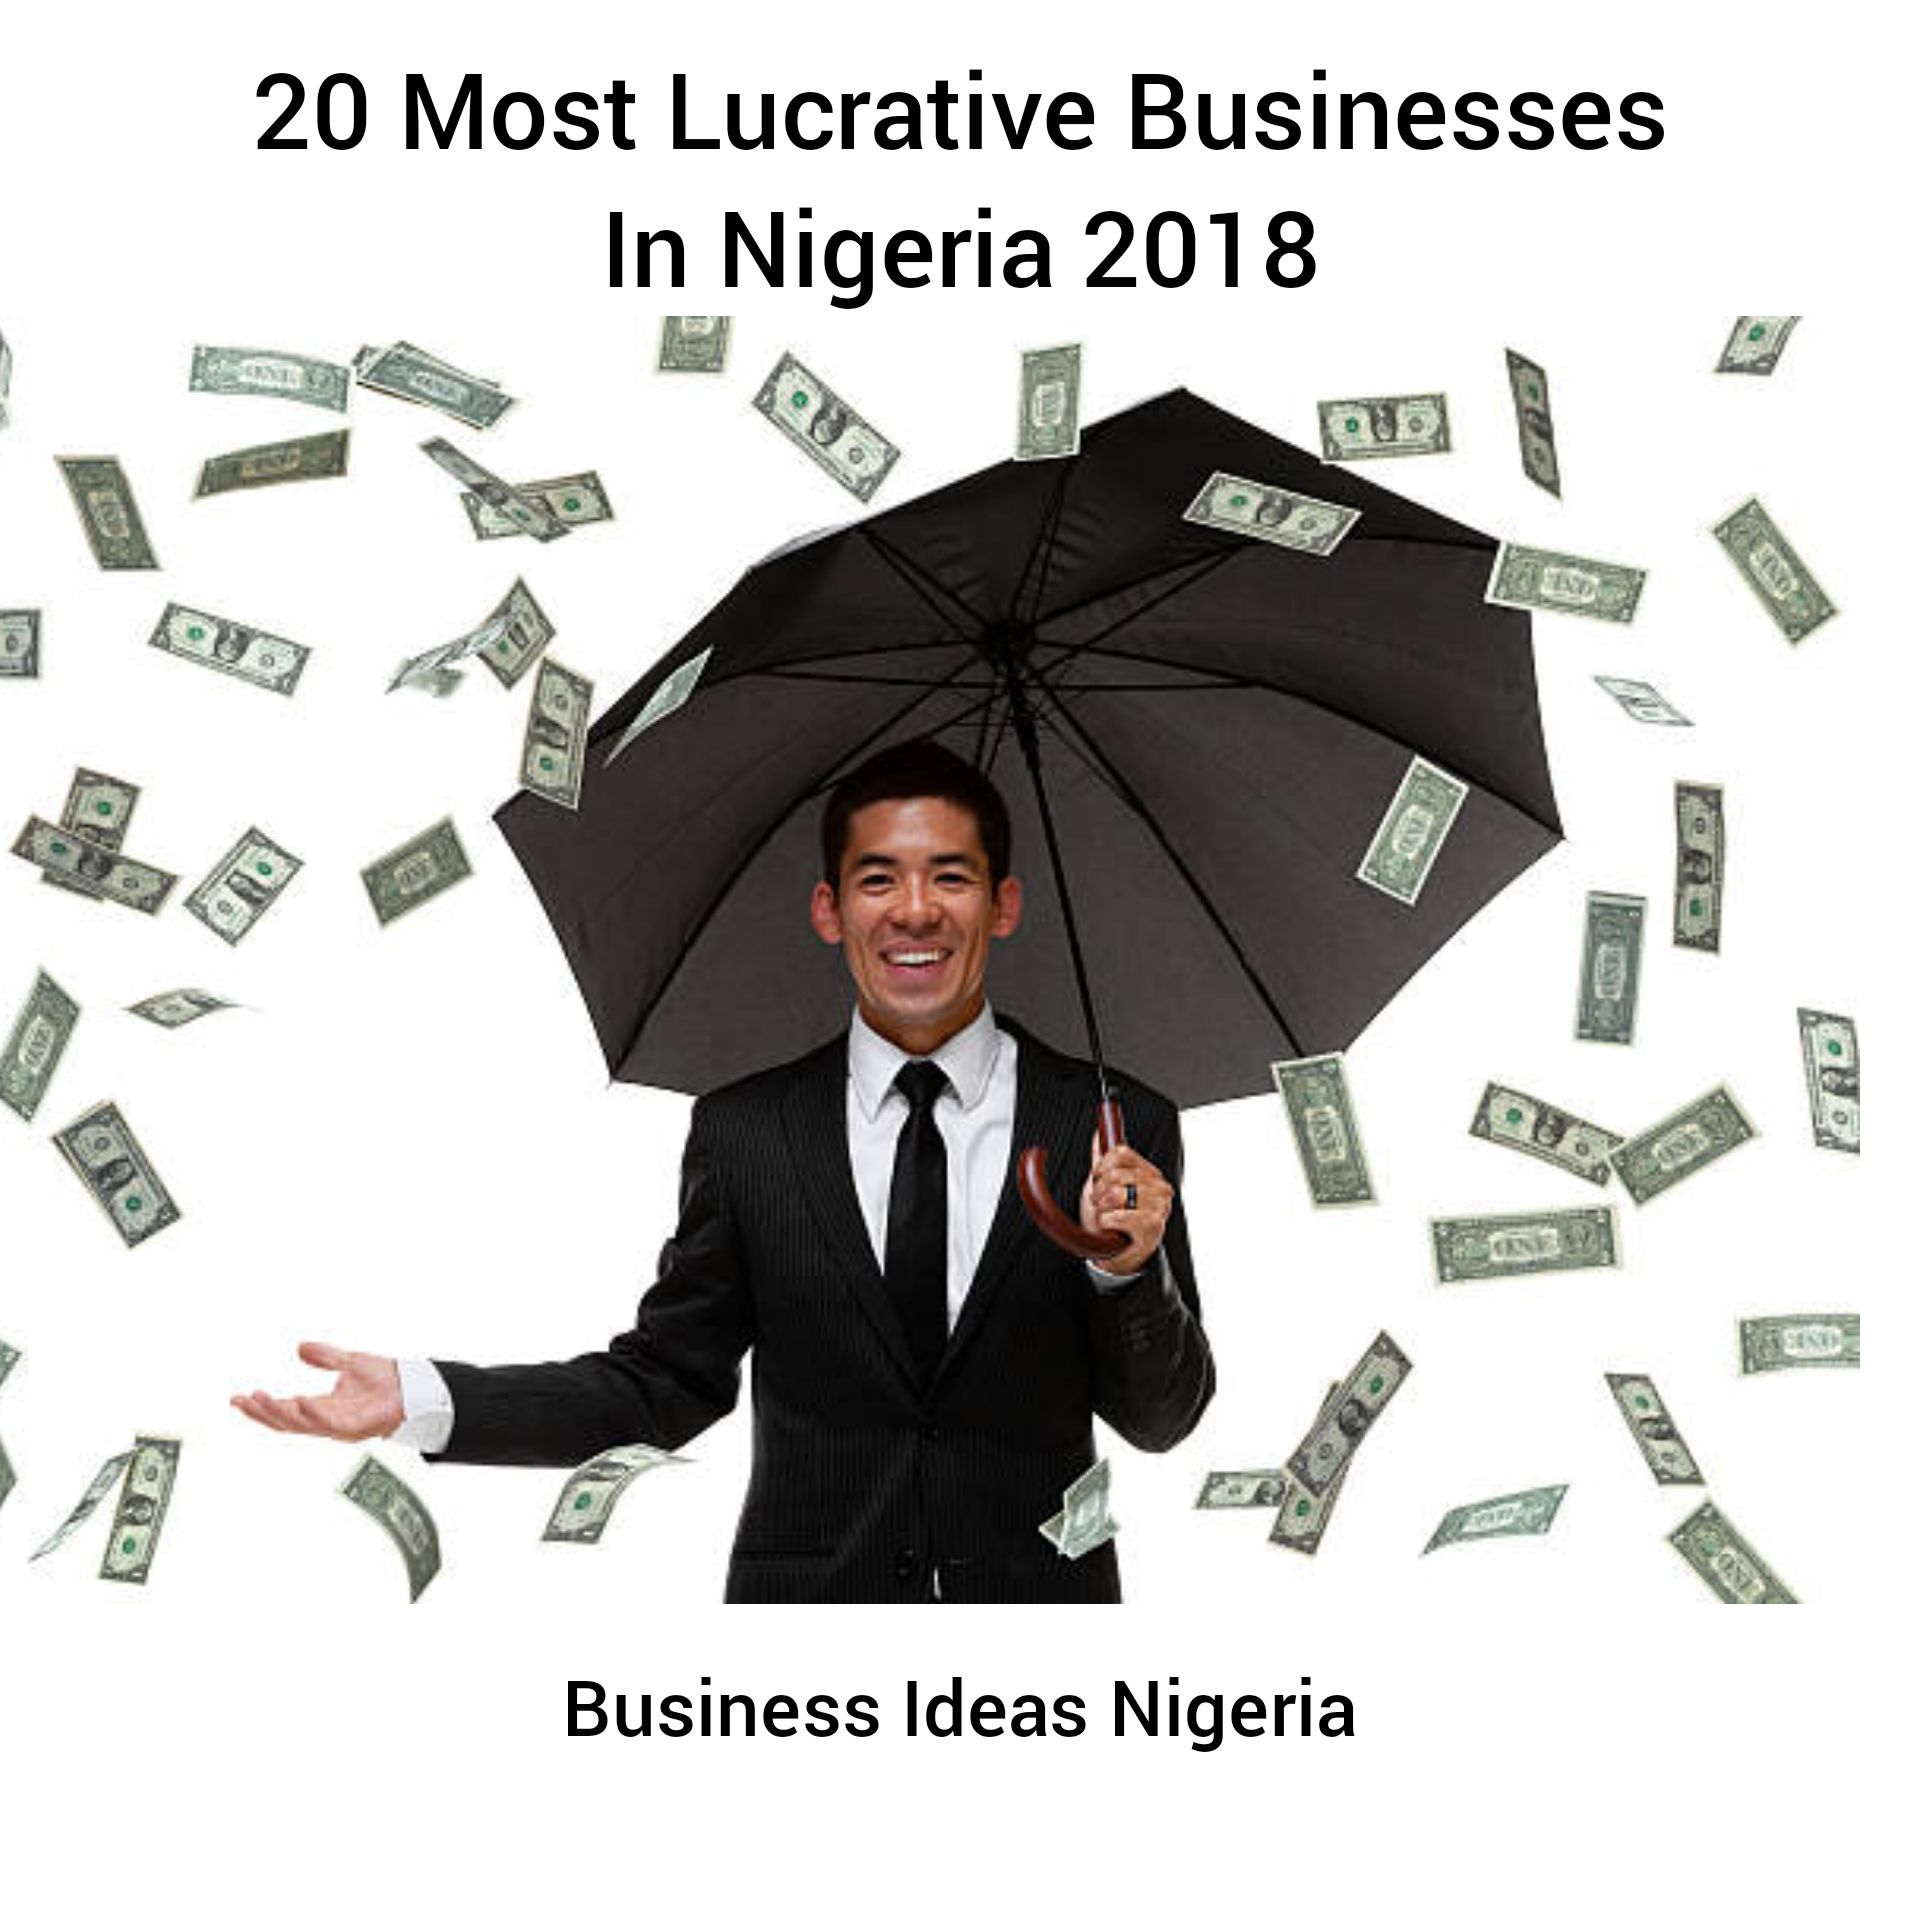 Top 20 Most Lucrative Businesses In Nigeria